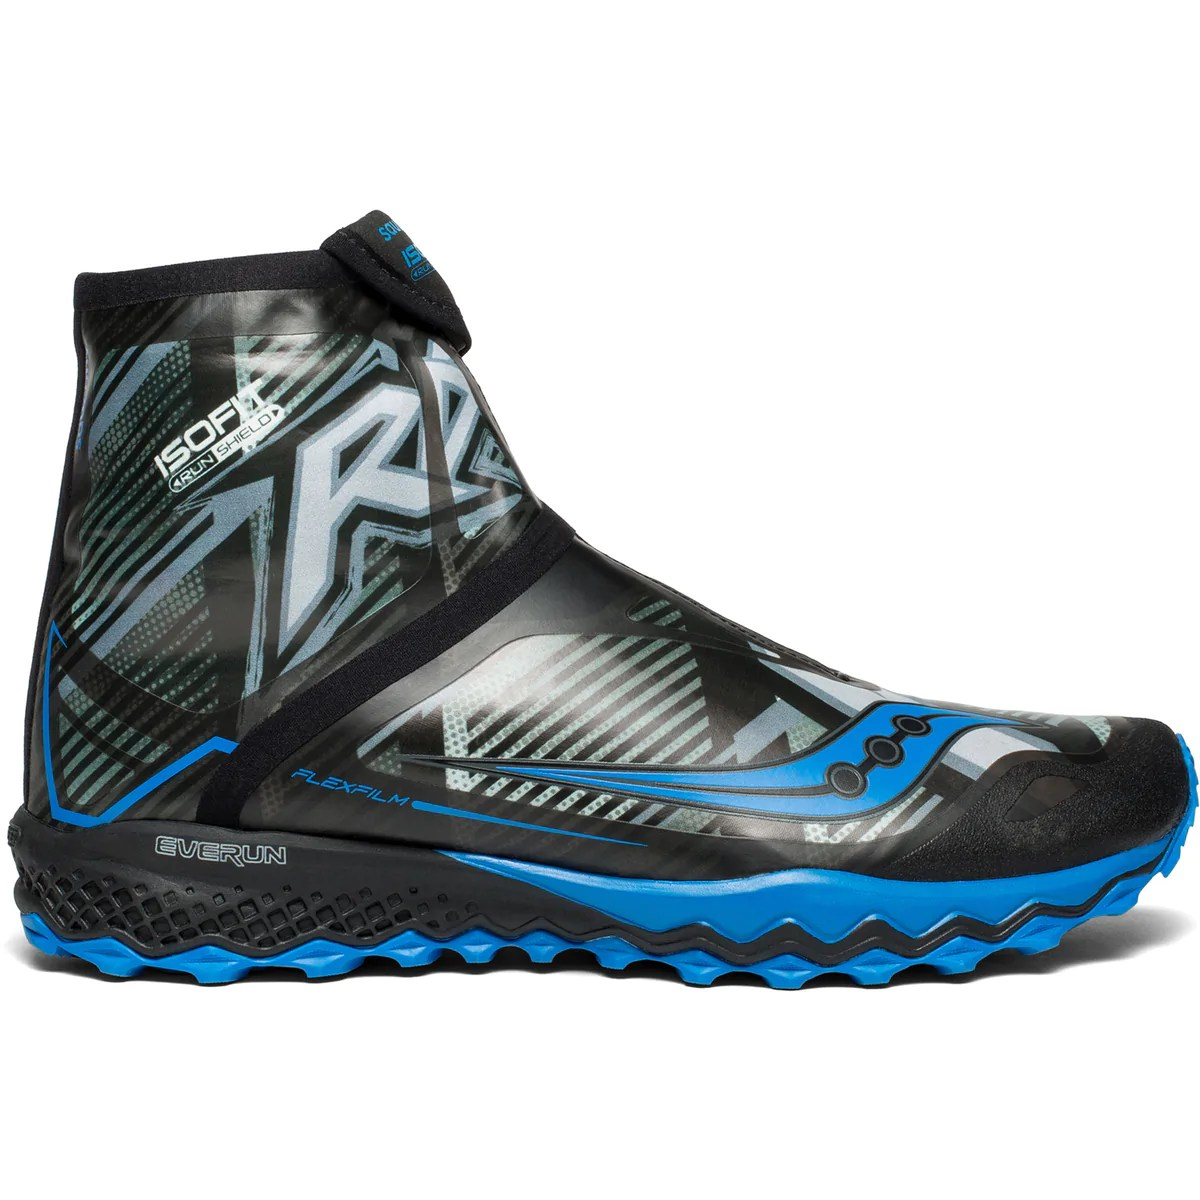 Keen Shoes New